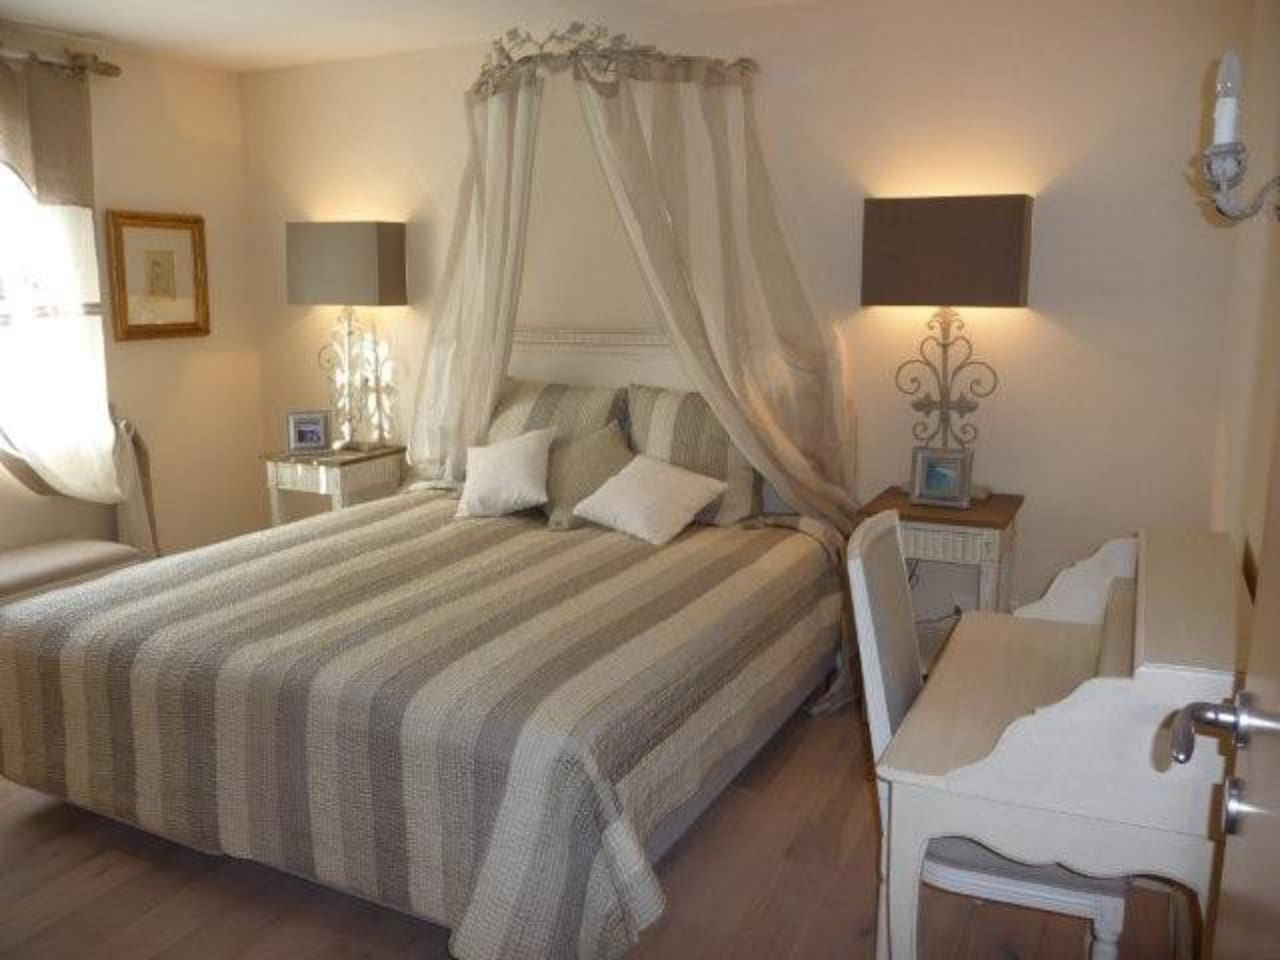 4 nice bedrooms - all new